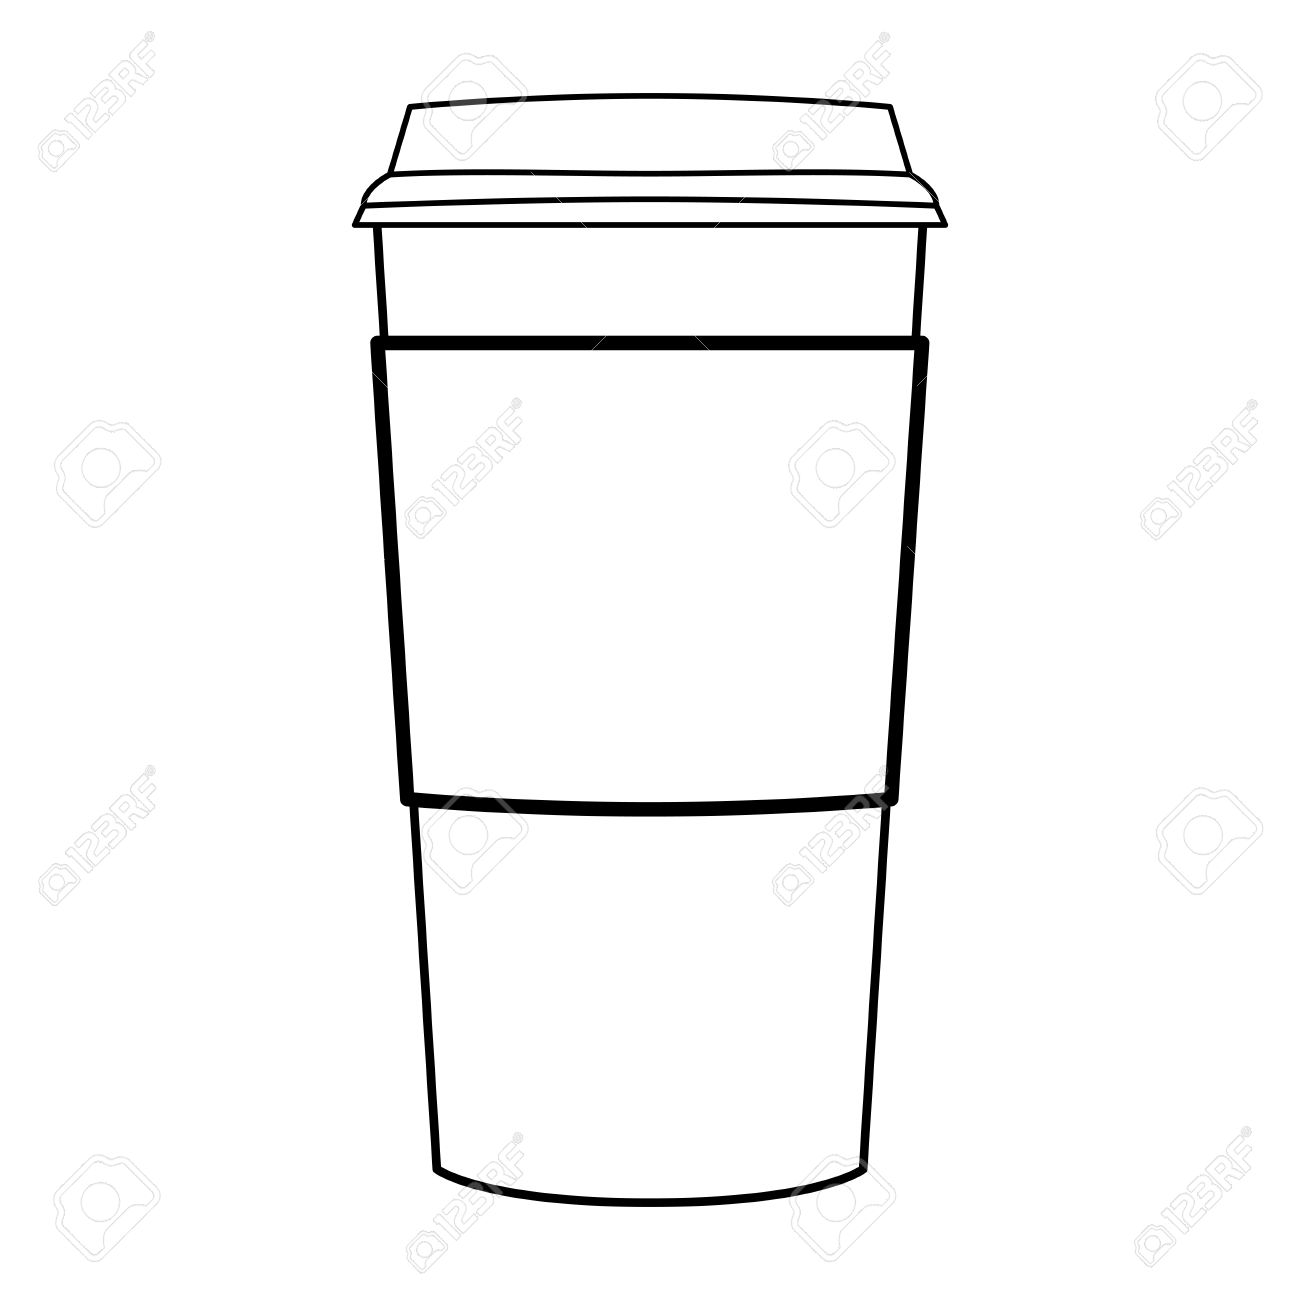 Tumbler clipart black and white svg library download Starbucks Tumblr Drawing | Free download best Starbucks ... svg library download